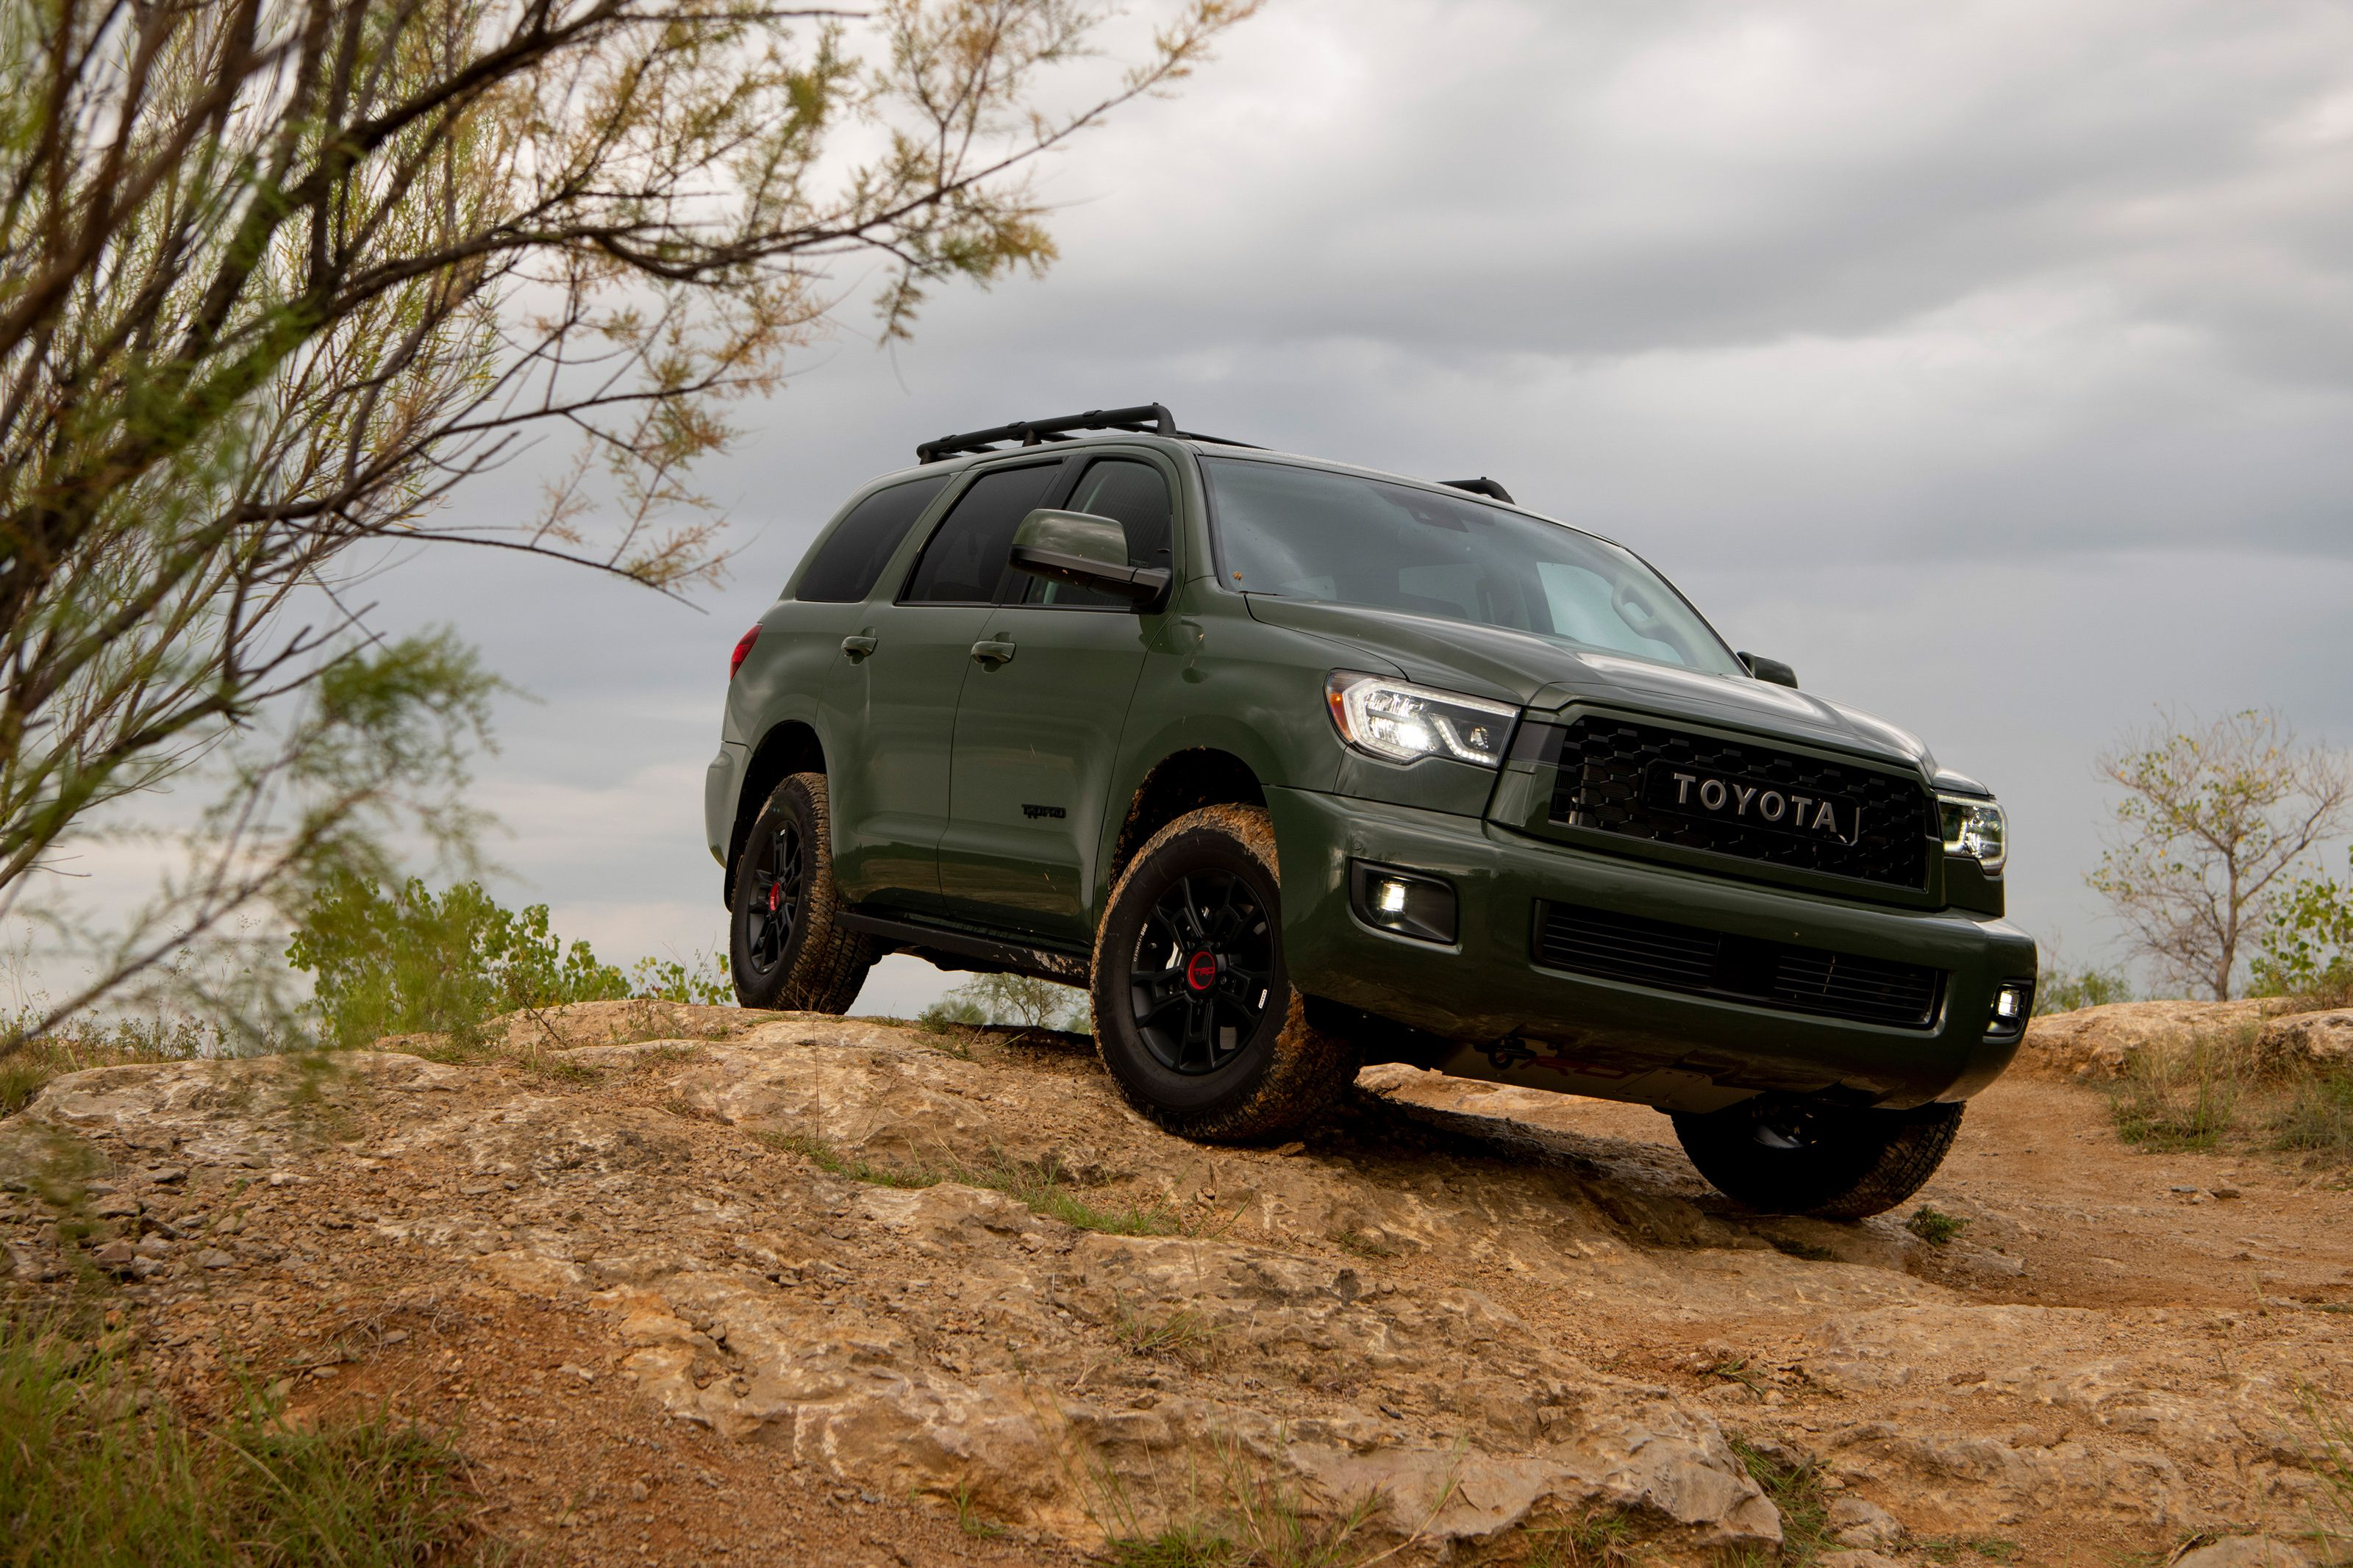 2020 Toyota Sequoia Trd Pro Breaks Its Own Trail